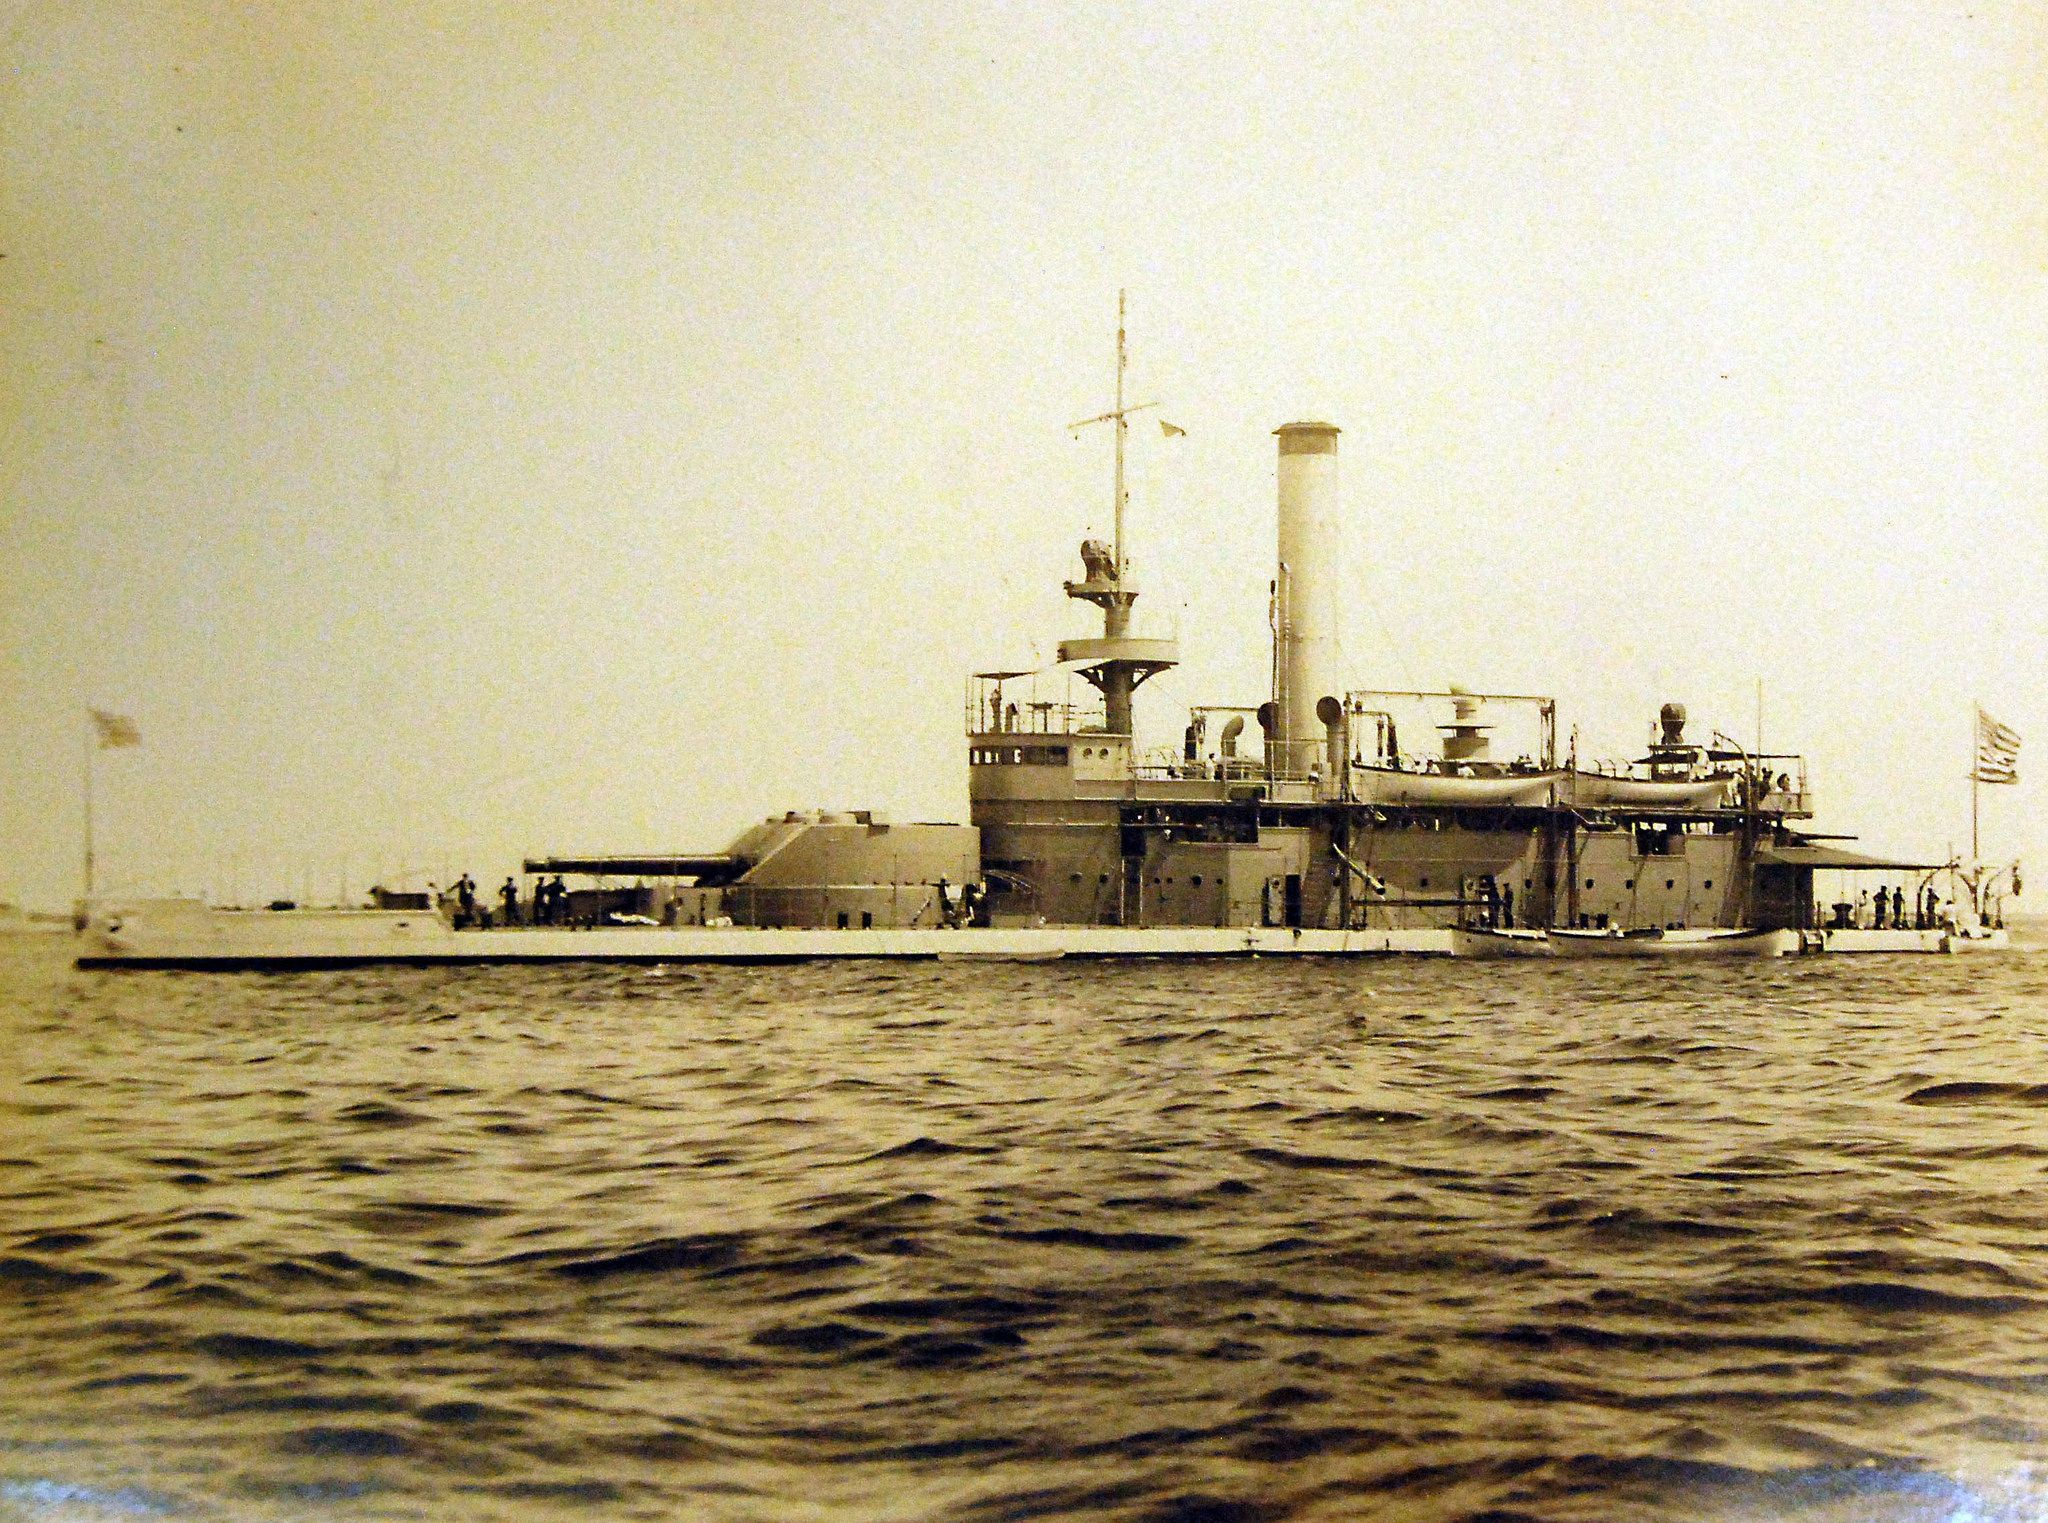 Find This Pin And More On Dreadnoughts And More Navy Singleturreted  Monitor